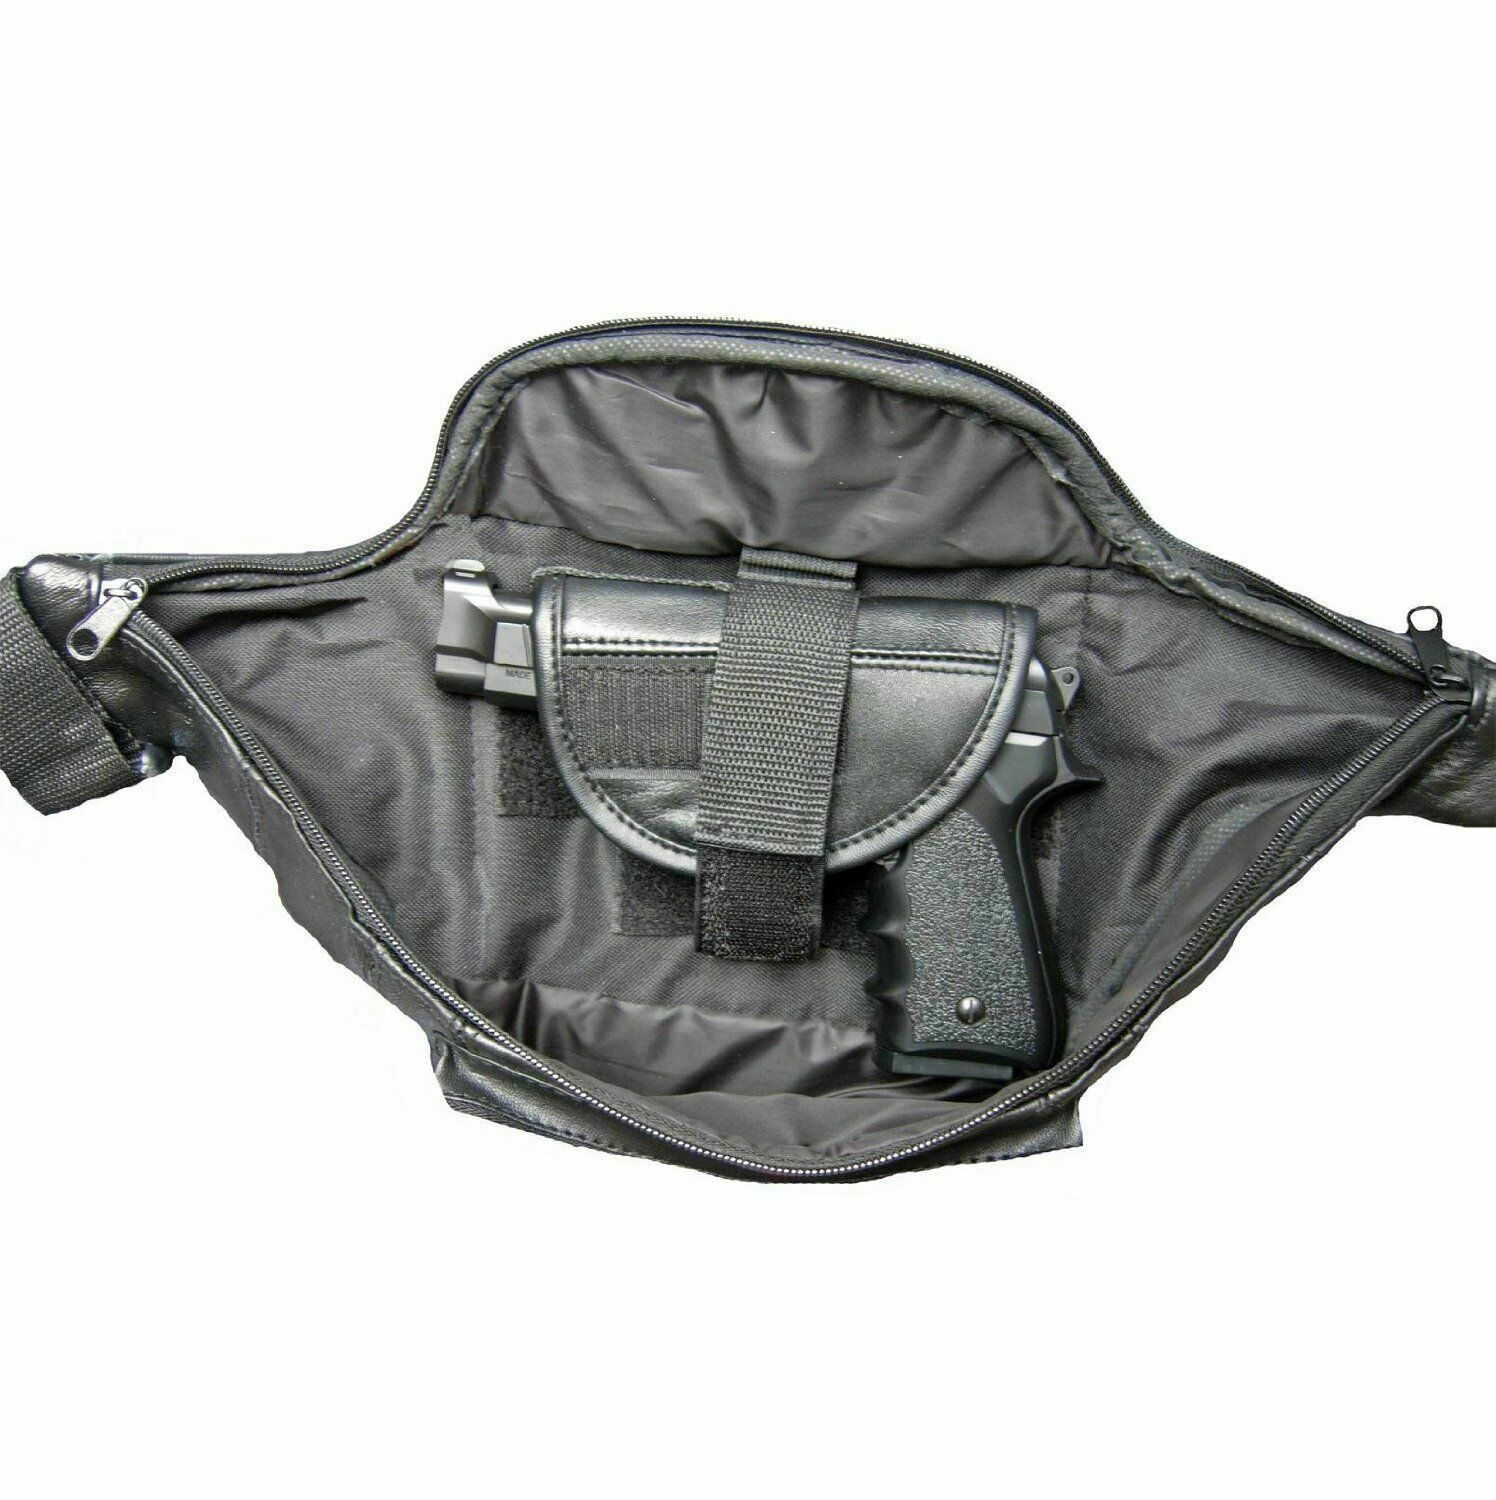 Black Leather Concealed Carry Weapon Fanny Pack Waist Pistol Gun Bag CCW